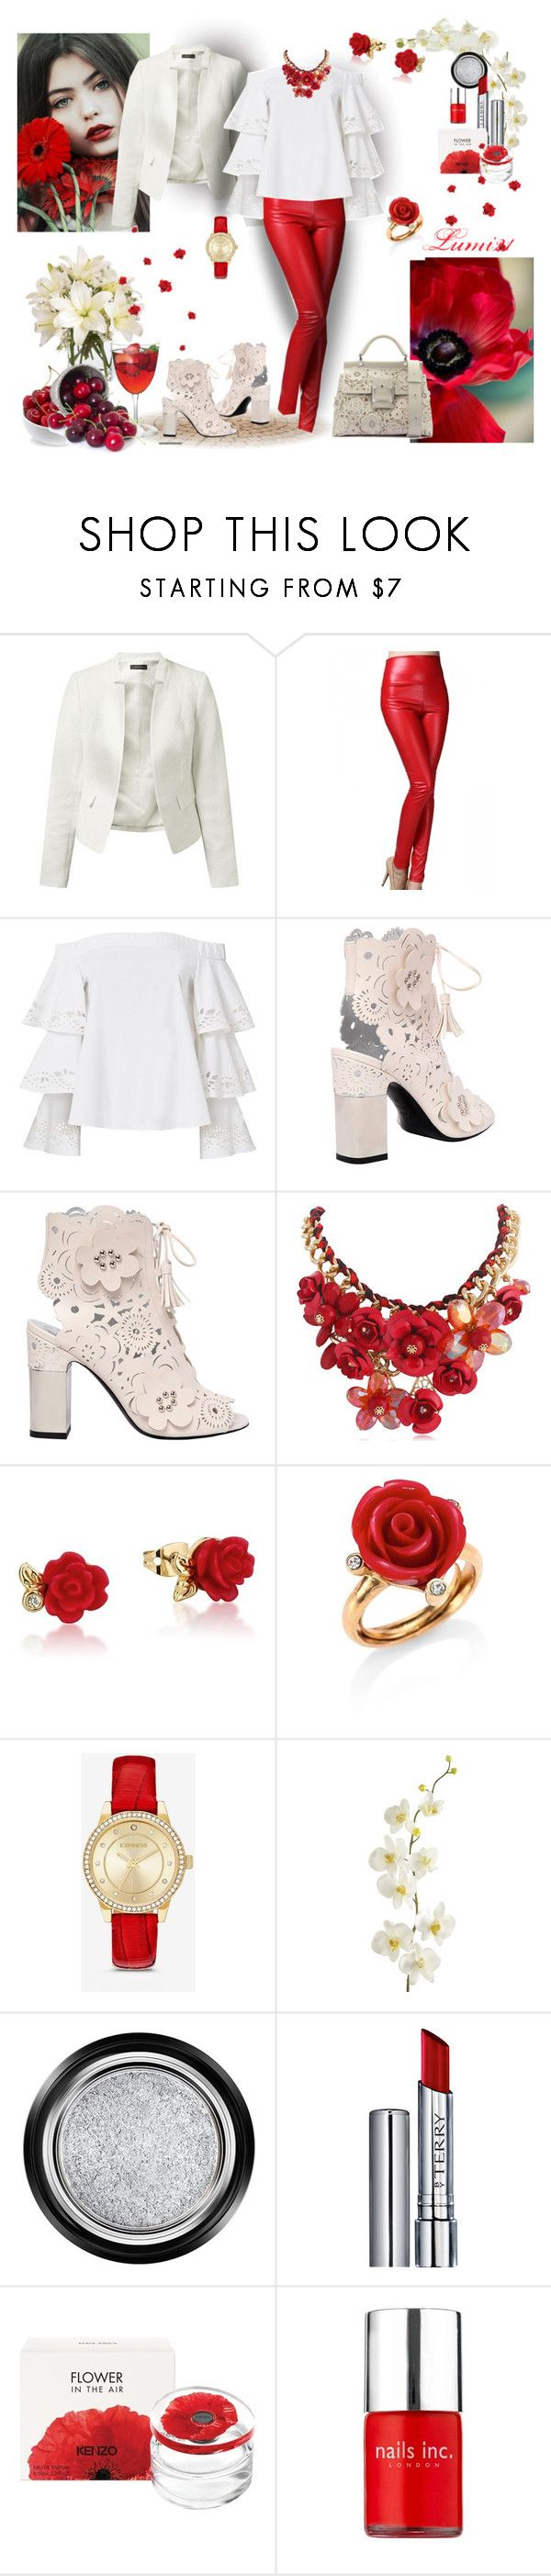 """cherry's time"" by lumi-21 ❤ liked on Polyvore featuring Exclusive for Intermix, Roger Vivier, Sia, Disney, Oscar de la Renta, Express, Pier 1 Imports, Giorgio Armani, By Terry and Kenzo"